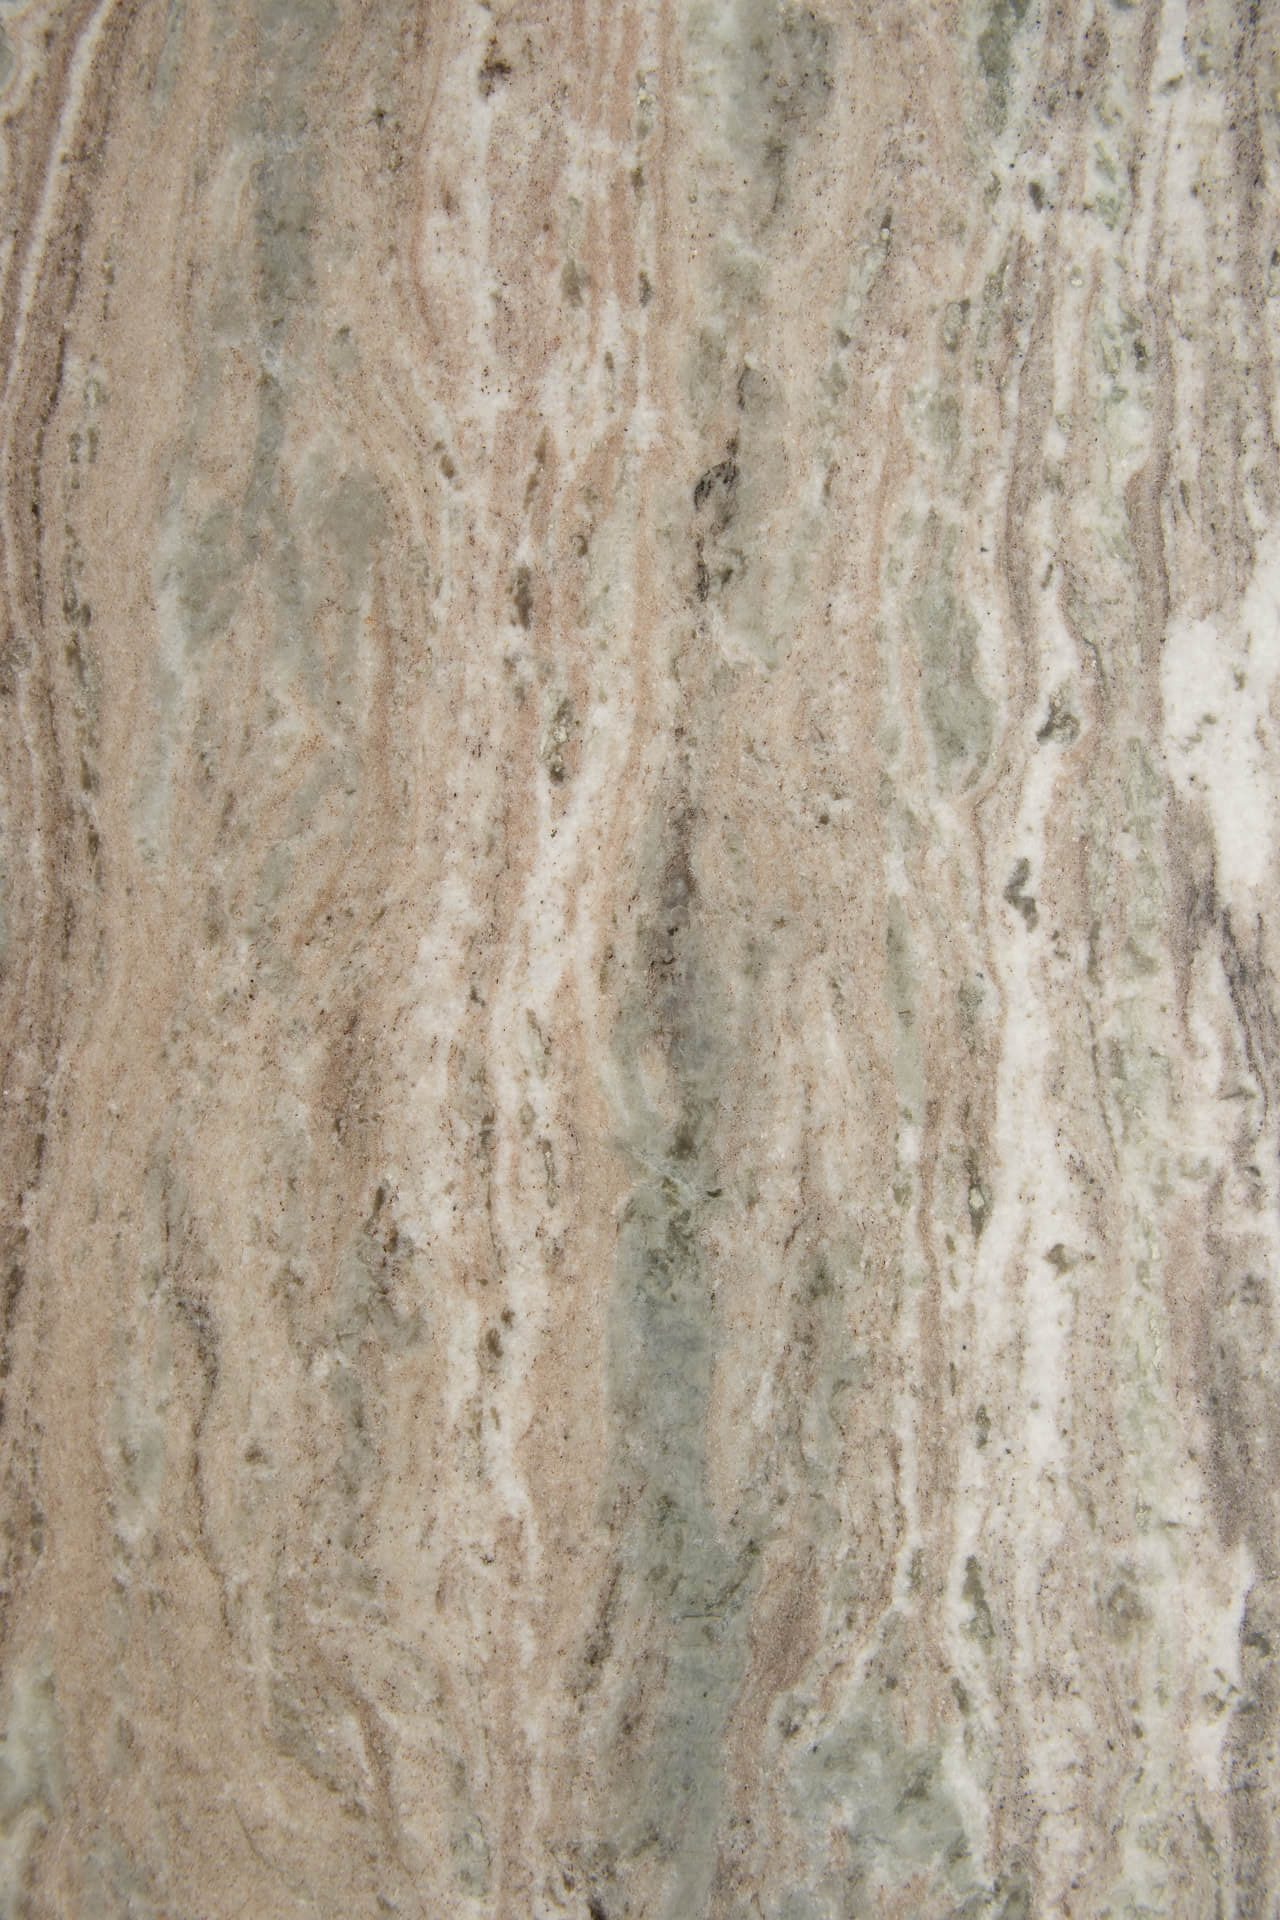 fantasy brown 4279 cu countertop - by Magnolia Countertops. A Countertop fabricator of Granite Countertops, Marble Countertops, and Quartz Countertops in Cookeville and Crossville TN.